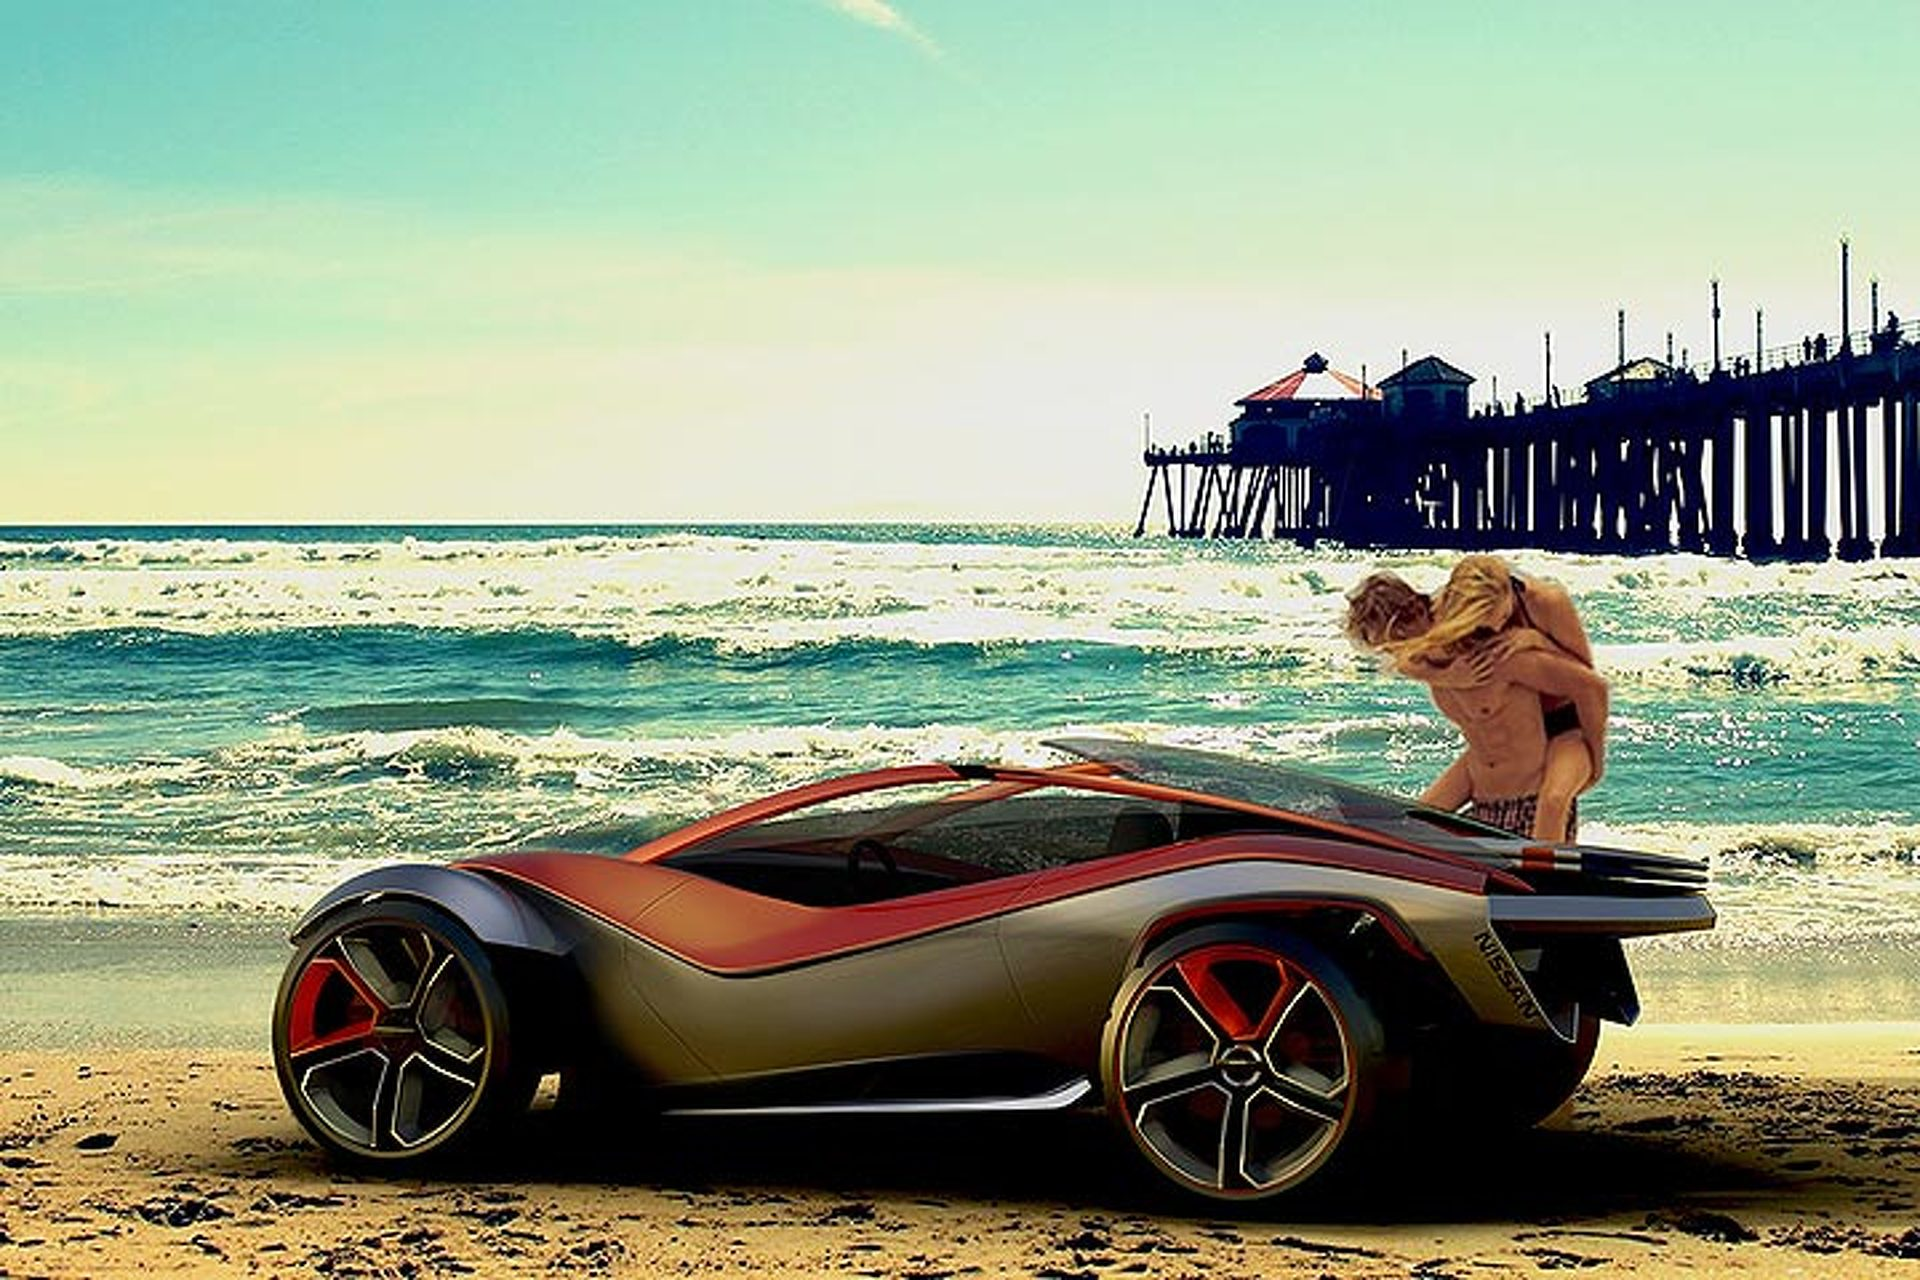 This Nissan Beach Buggy Concept is the Perfect Summer Car